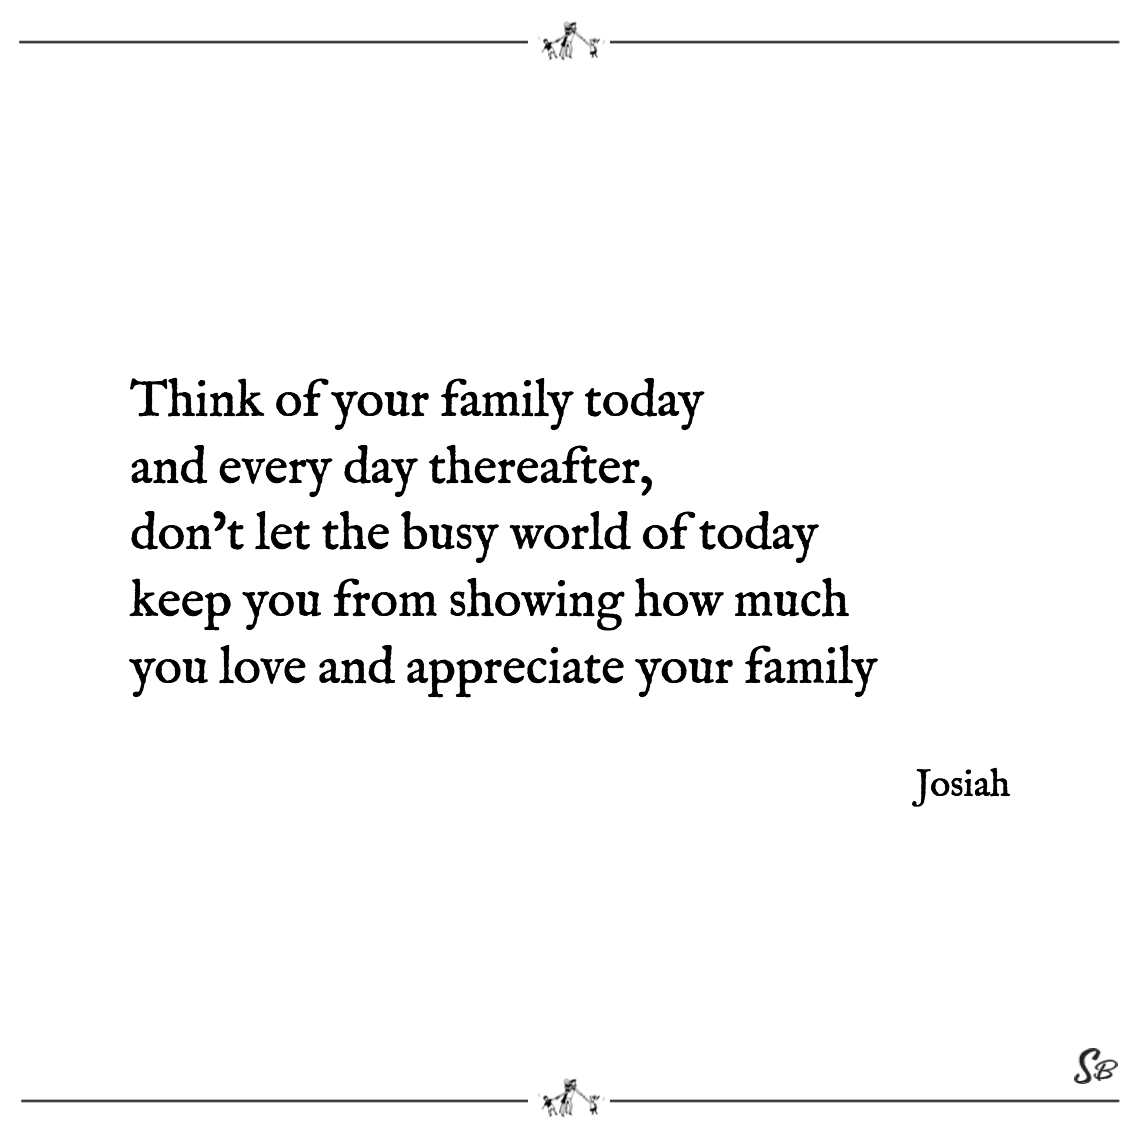 Think of your family today and every day thereafter, don't let the busy world of today keep you from showing how much you love and appreciate your family josiah